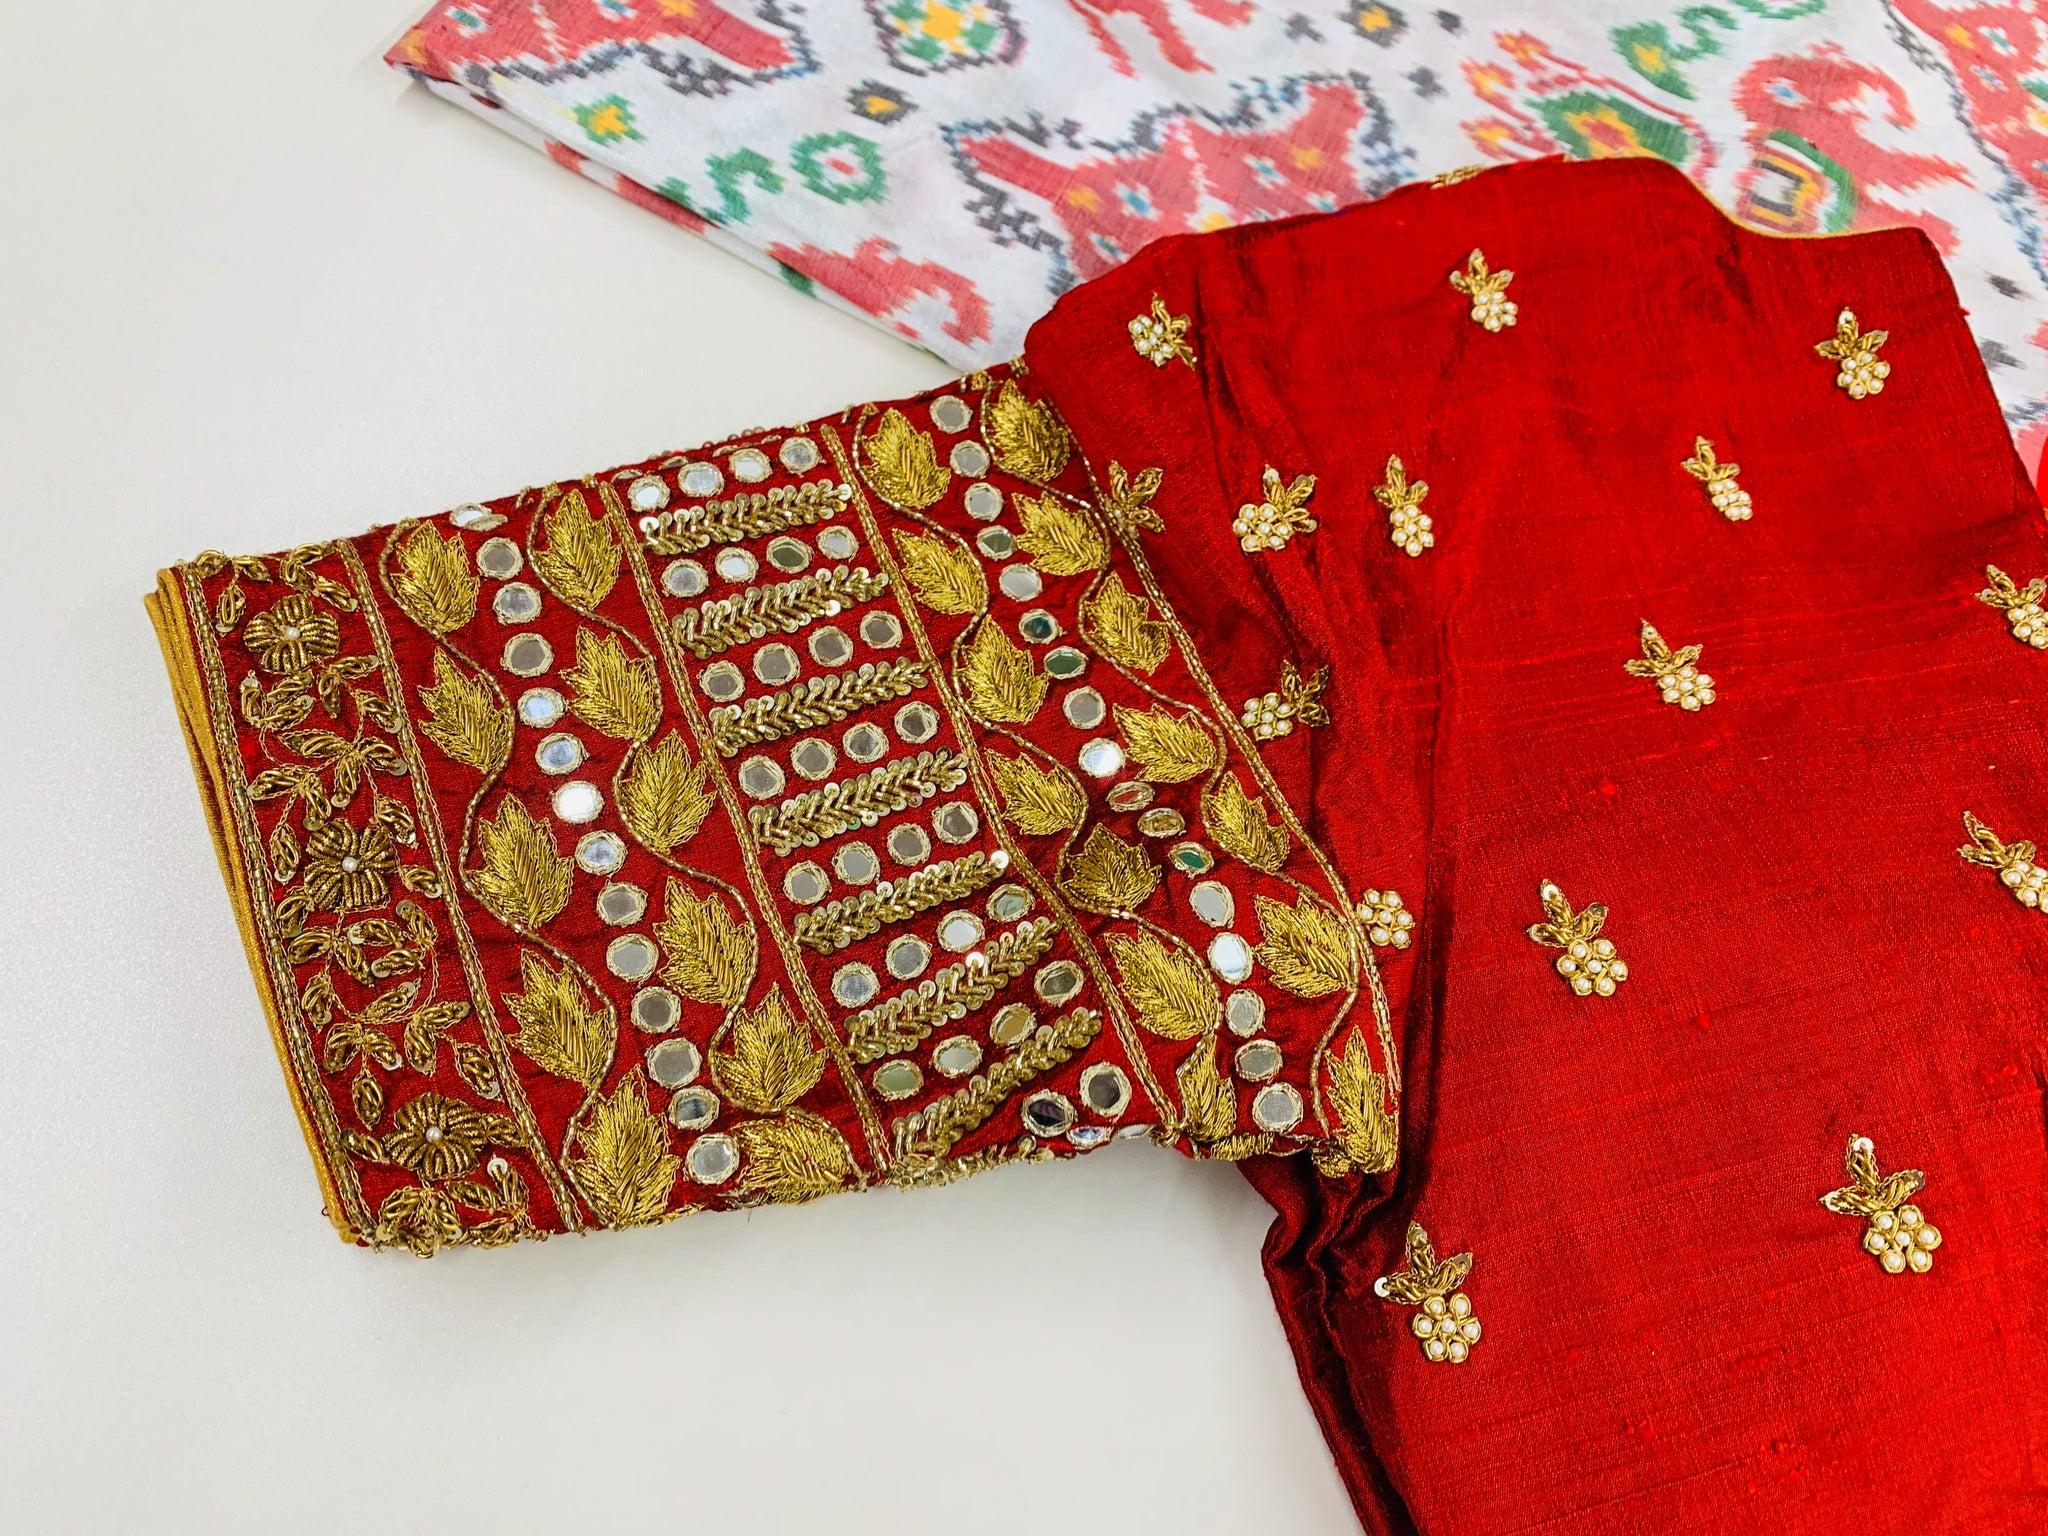 White and Maroon Ikkat Pochampally Saree